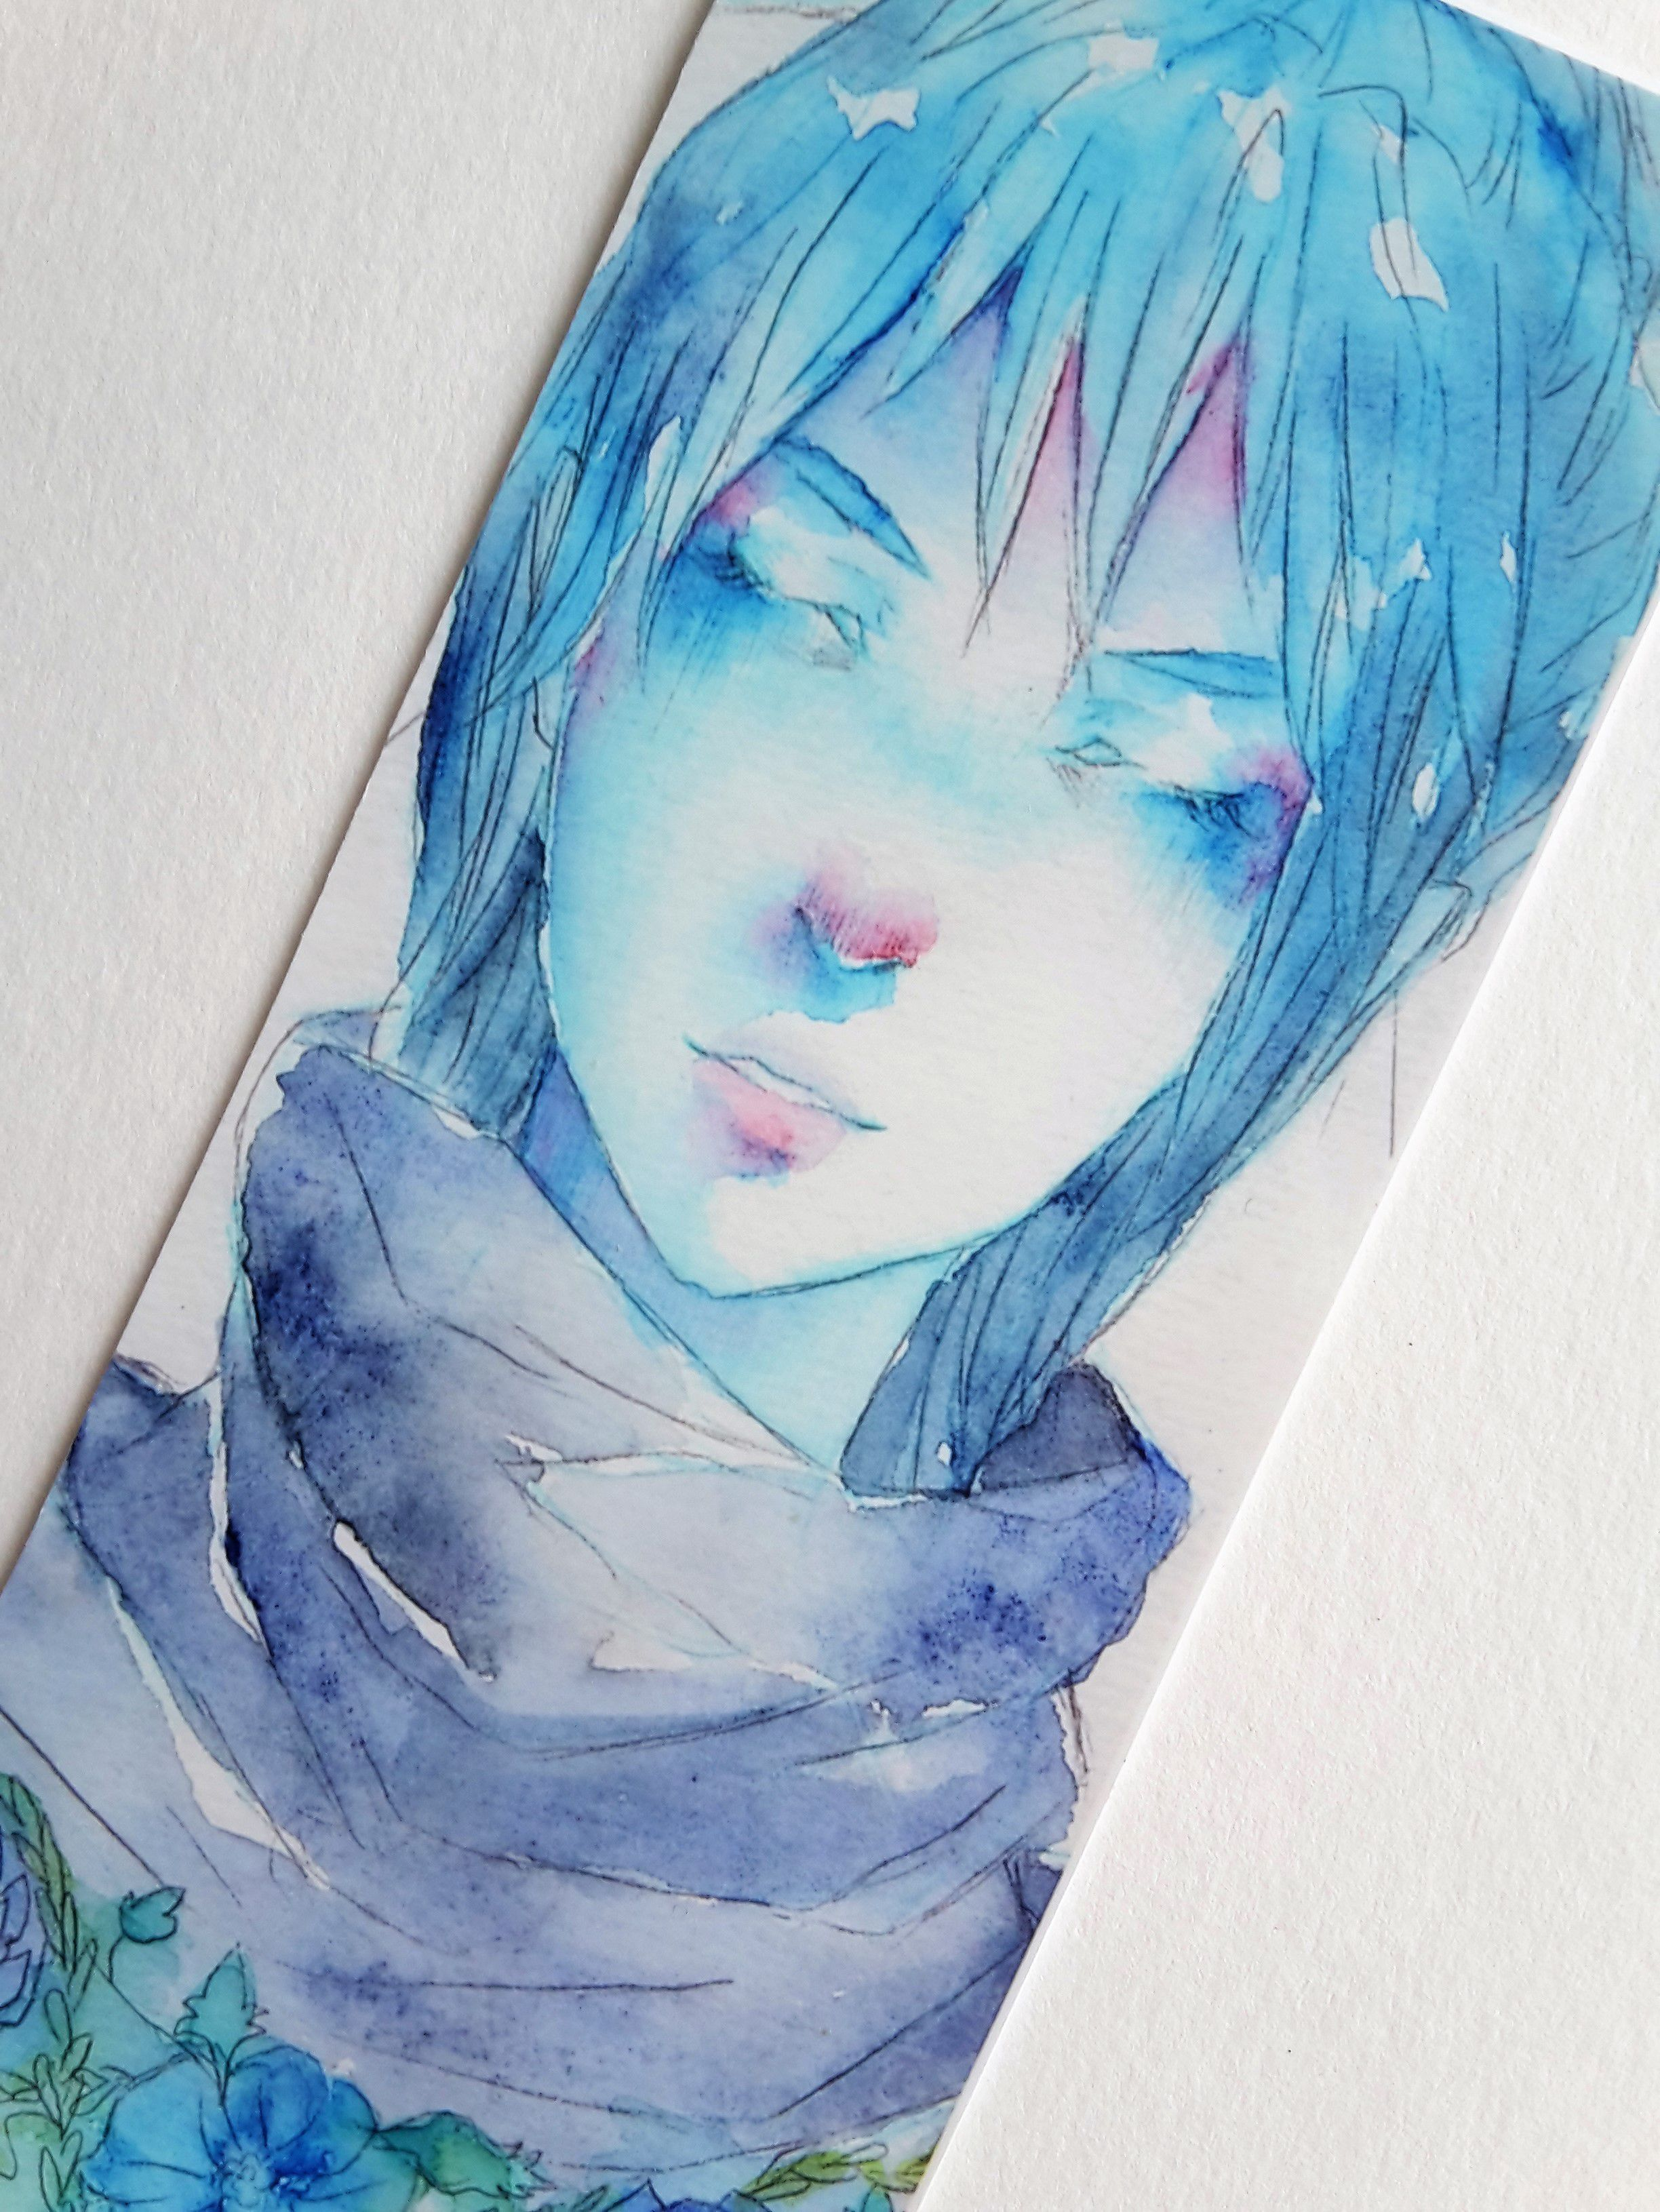 anime manga flowers bookmark artist cute reading watercolor drawing painting art